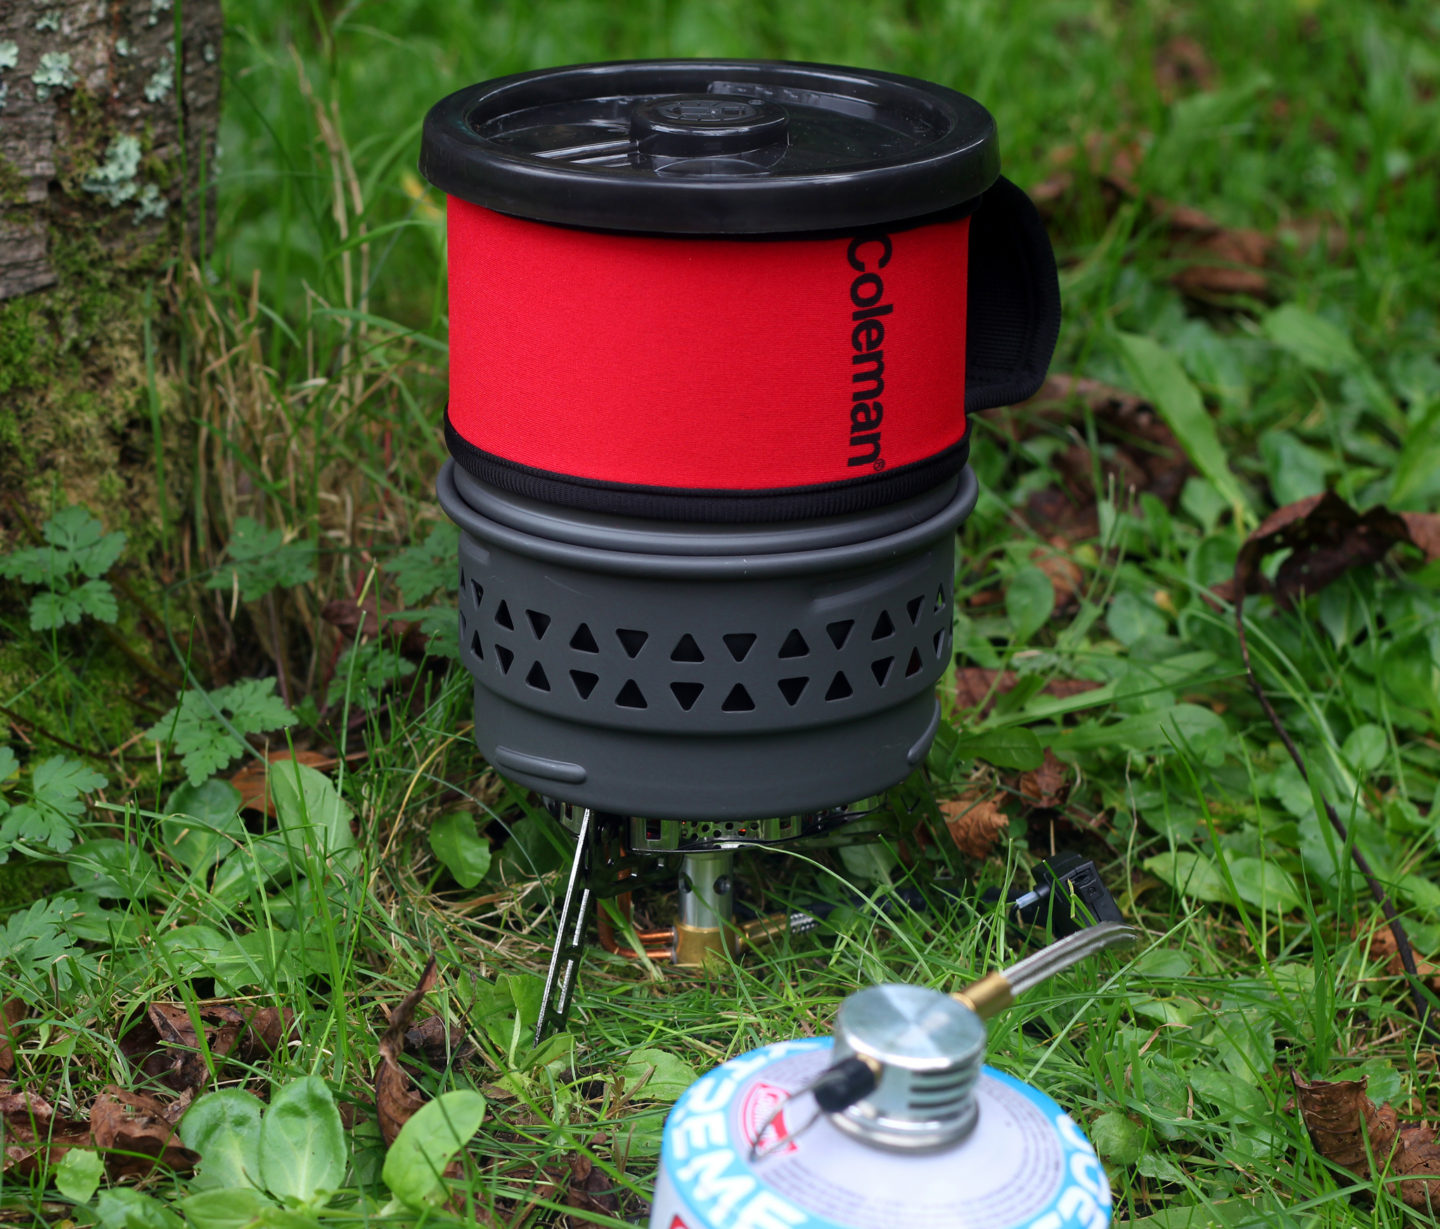 Coleman Fyrestorm PCS Backpacking Stove Review